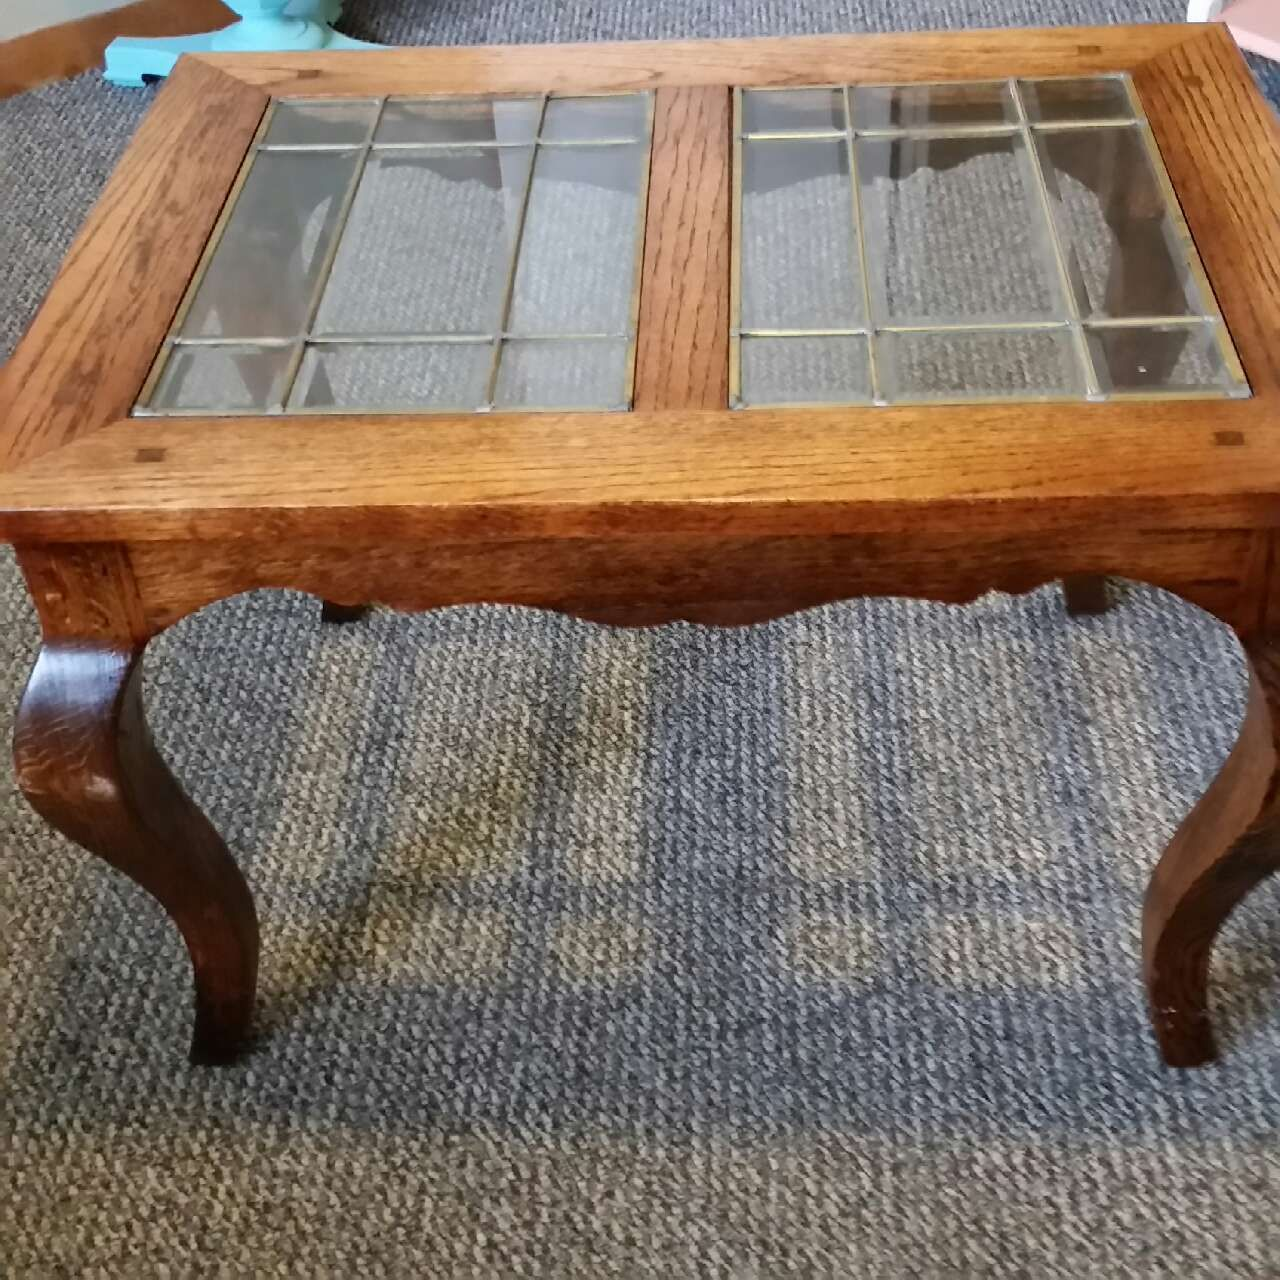 unique end table with leaded glass insert solid oak stained tables bedside for bedroom ethan allen court nightstand sofa dining industrial diy trunk wall hallways universal